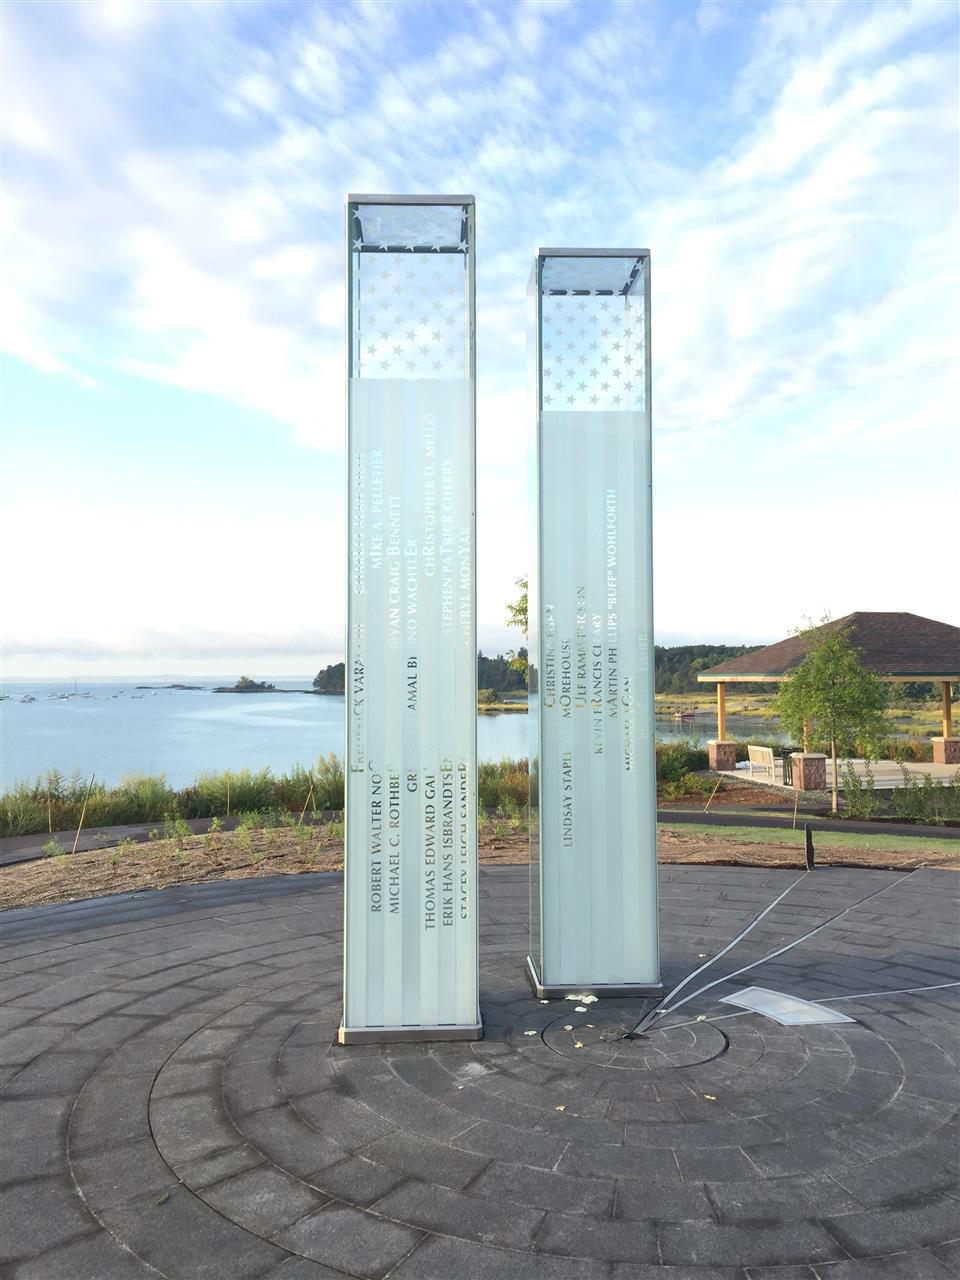 New Cos Cob 9/11 memorial  in Cos Cob,CT.